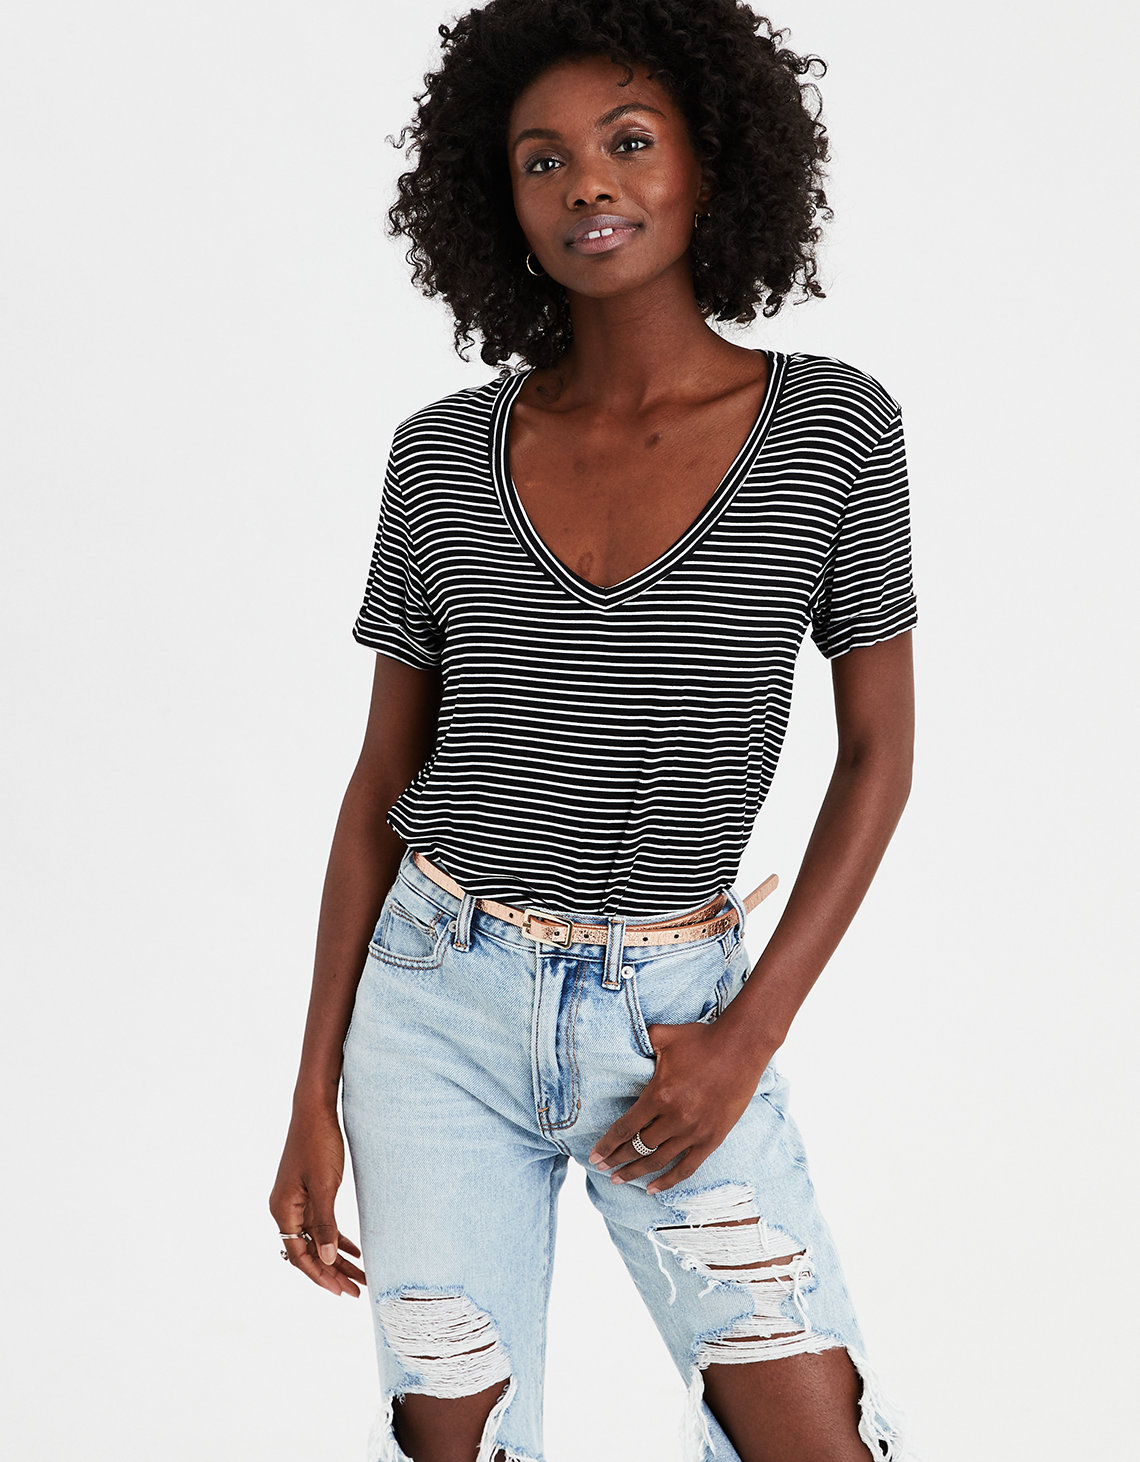 cb207f2f213 AE Soft   Sexy Striped Favorite T-Shirt. Placeholder image. Product Image